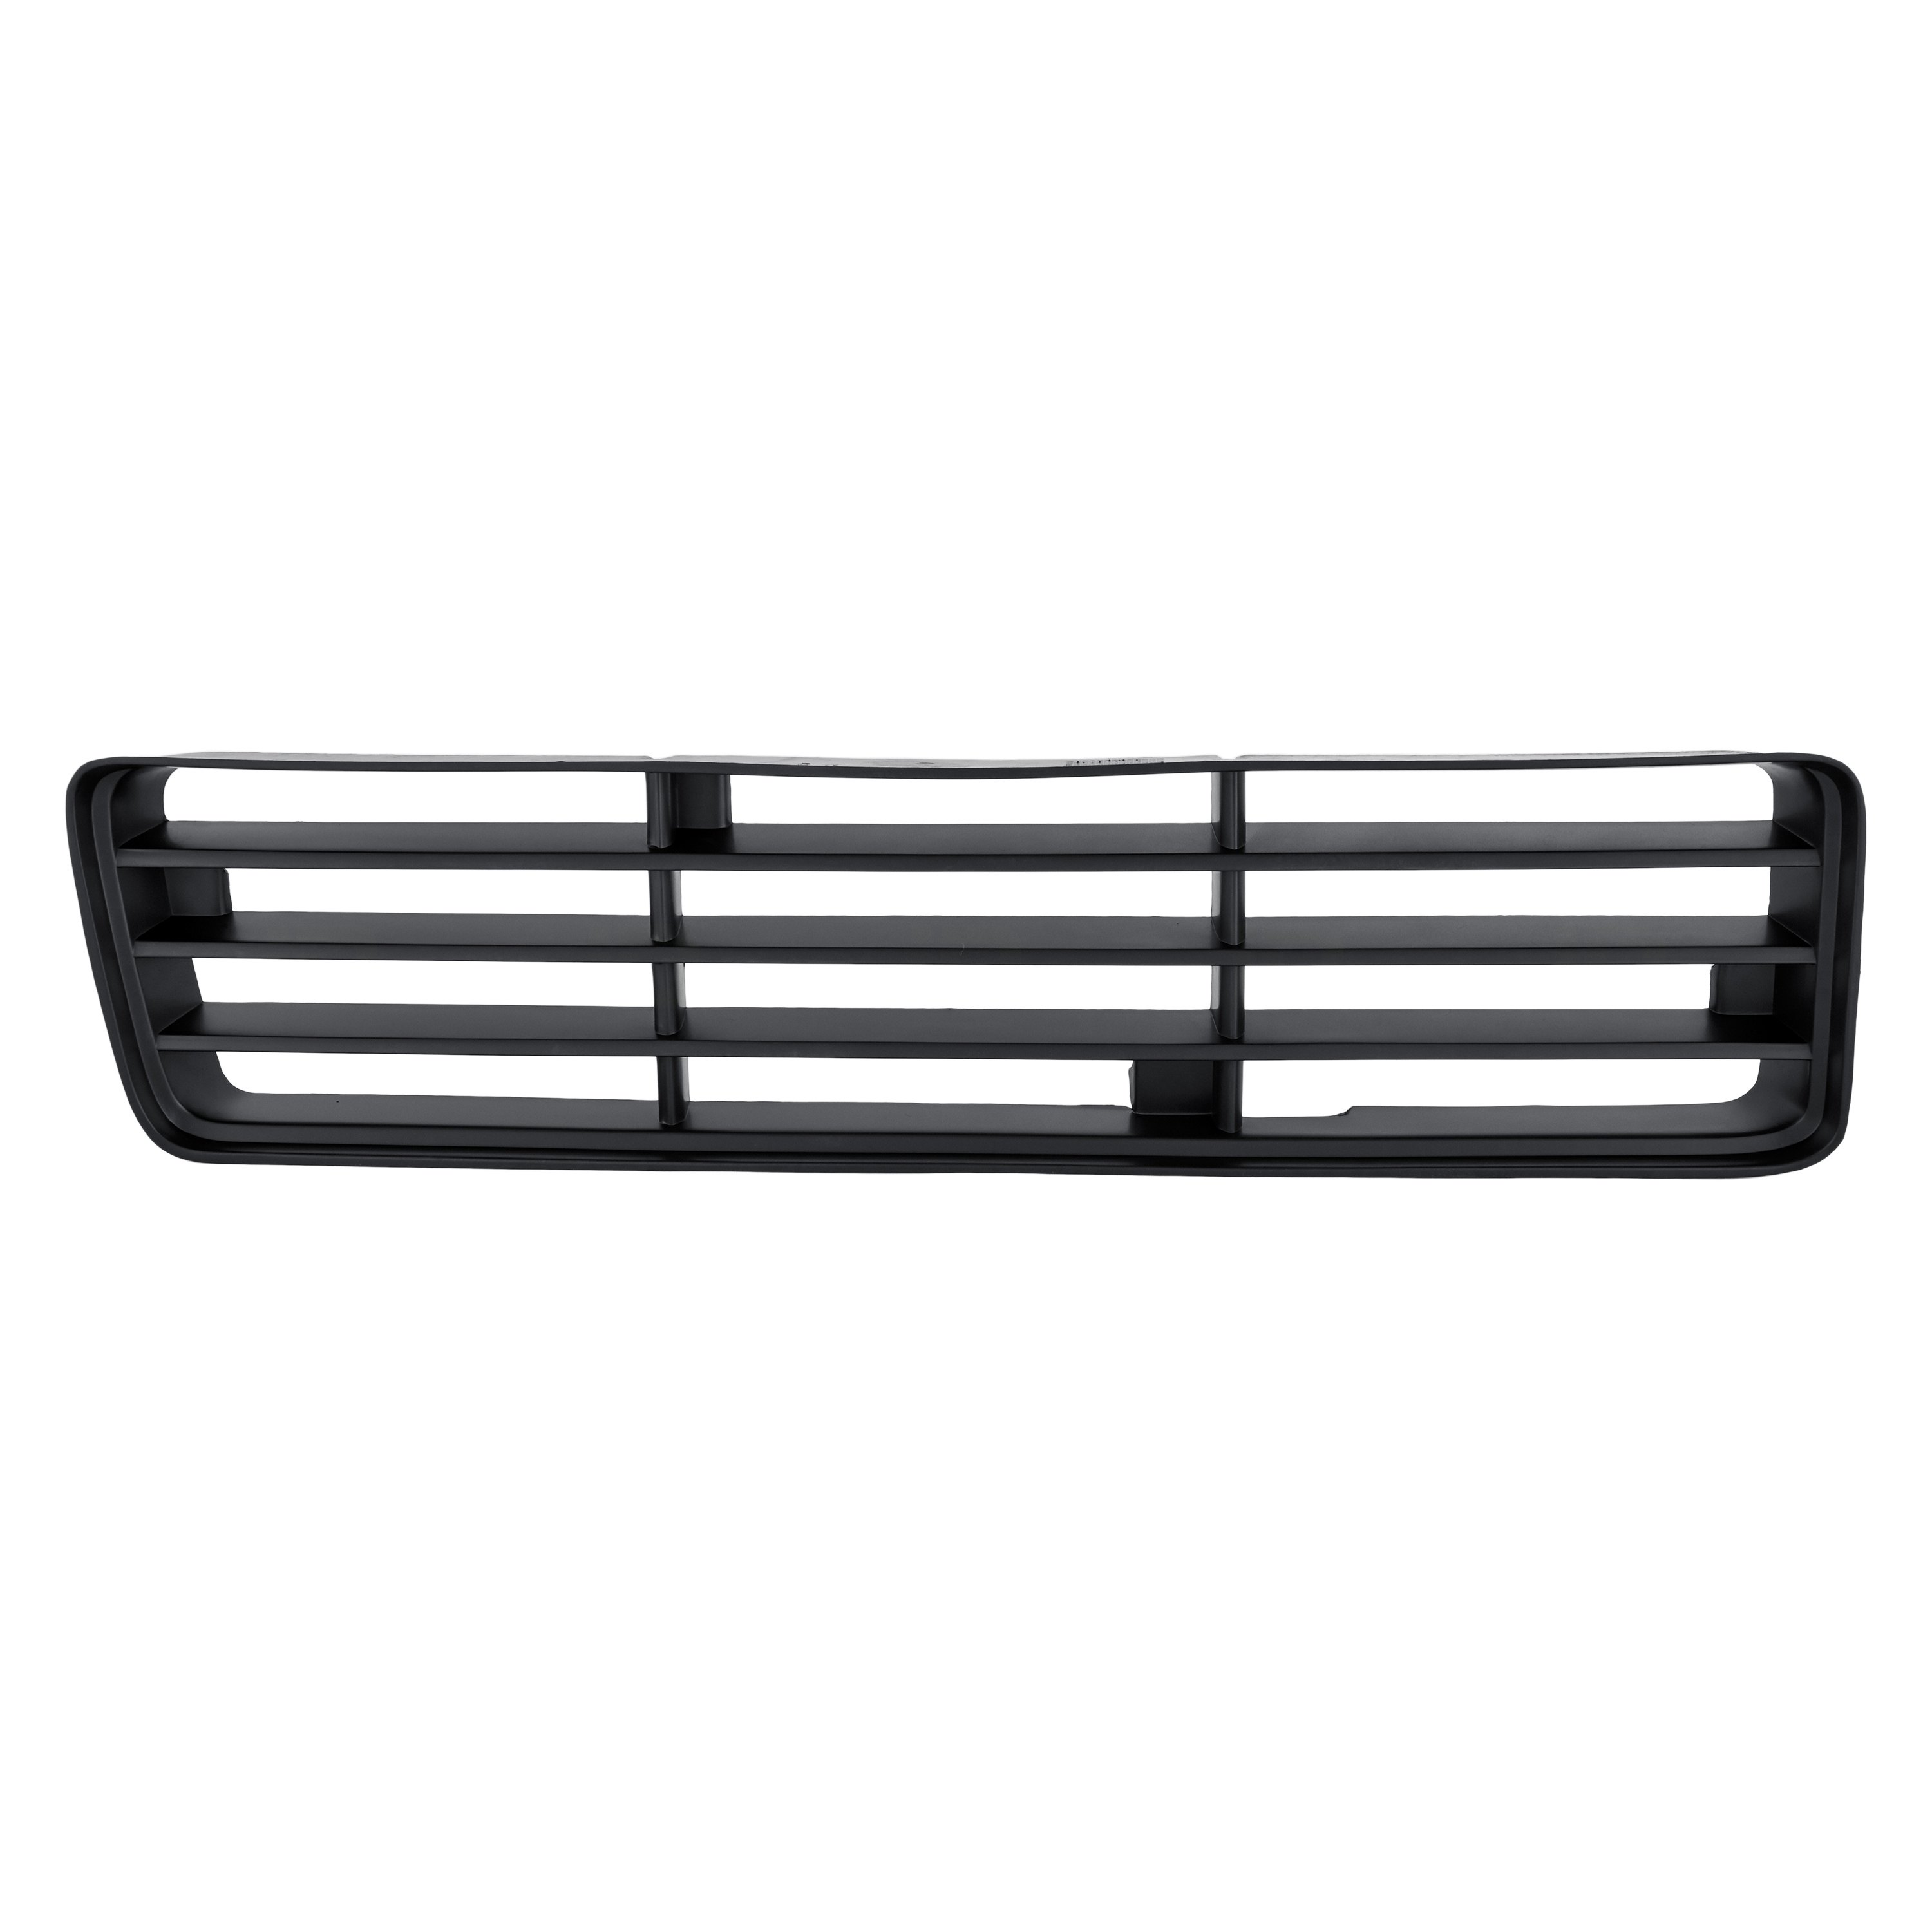 1993 Dodge Ramcharger Interior: For Dodge Ramcharger 1991-1993 Replace CH1200135 Passenger